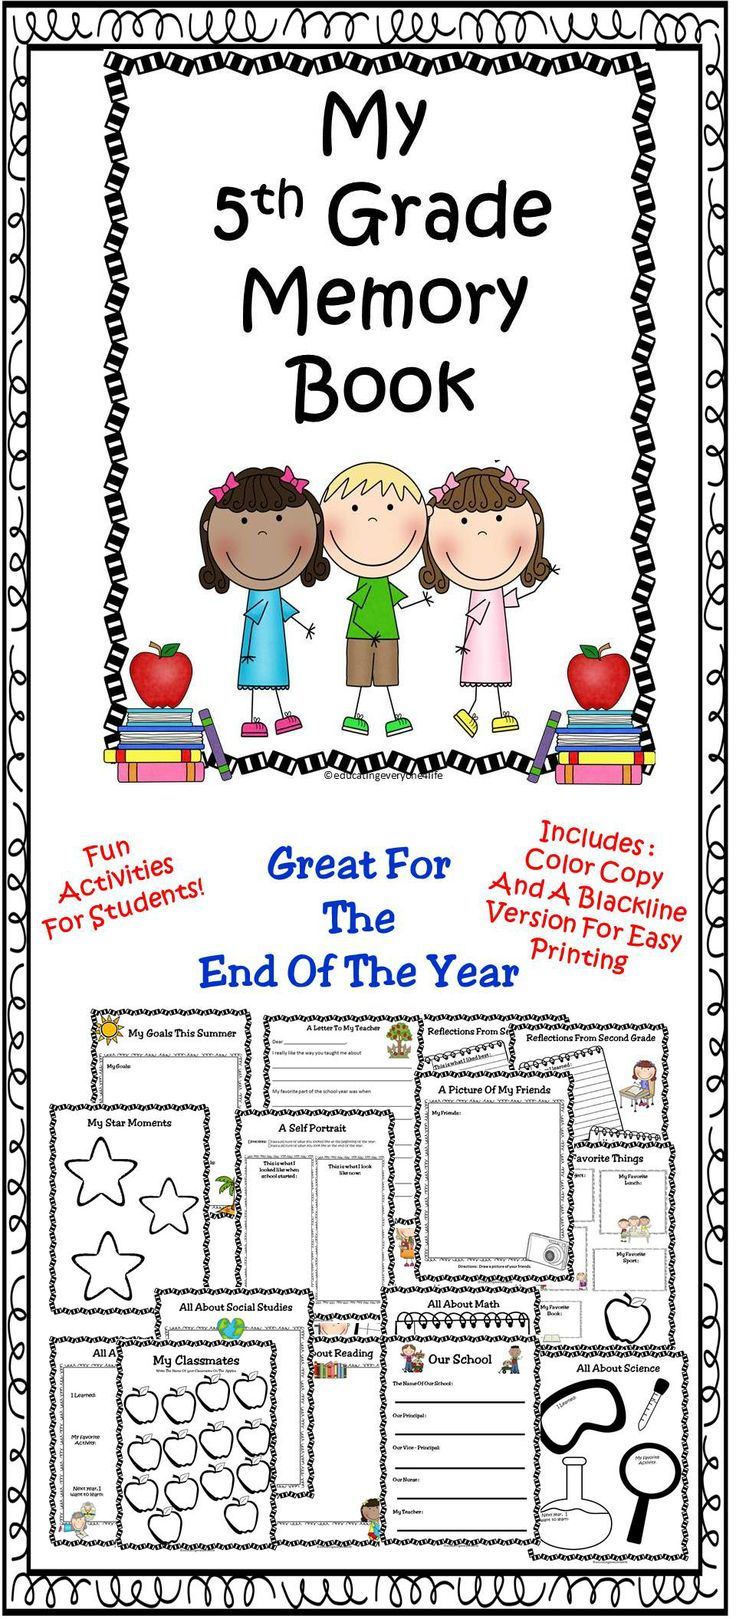 Worksheets For 5th Grade Students : Best last day week of school activities images on